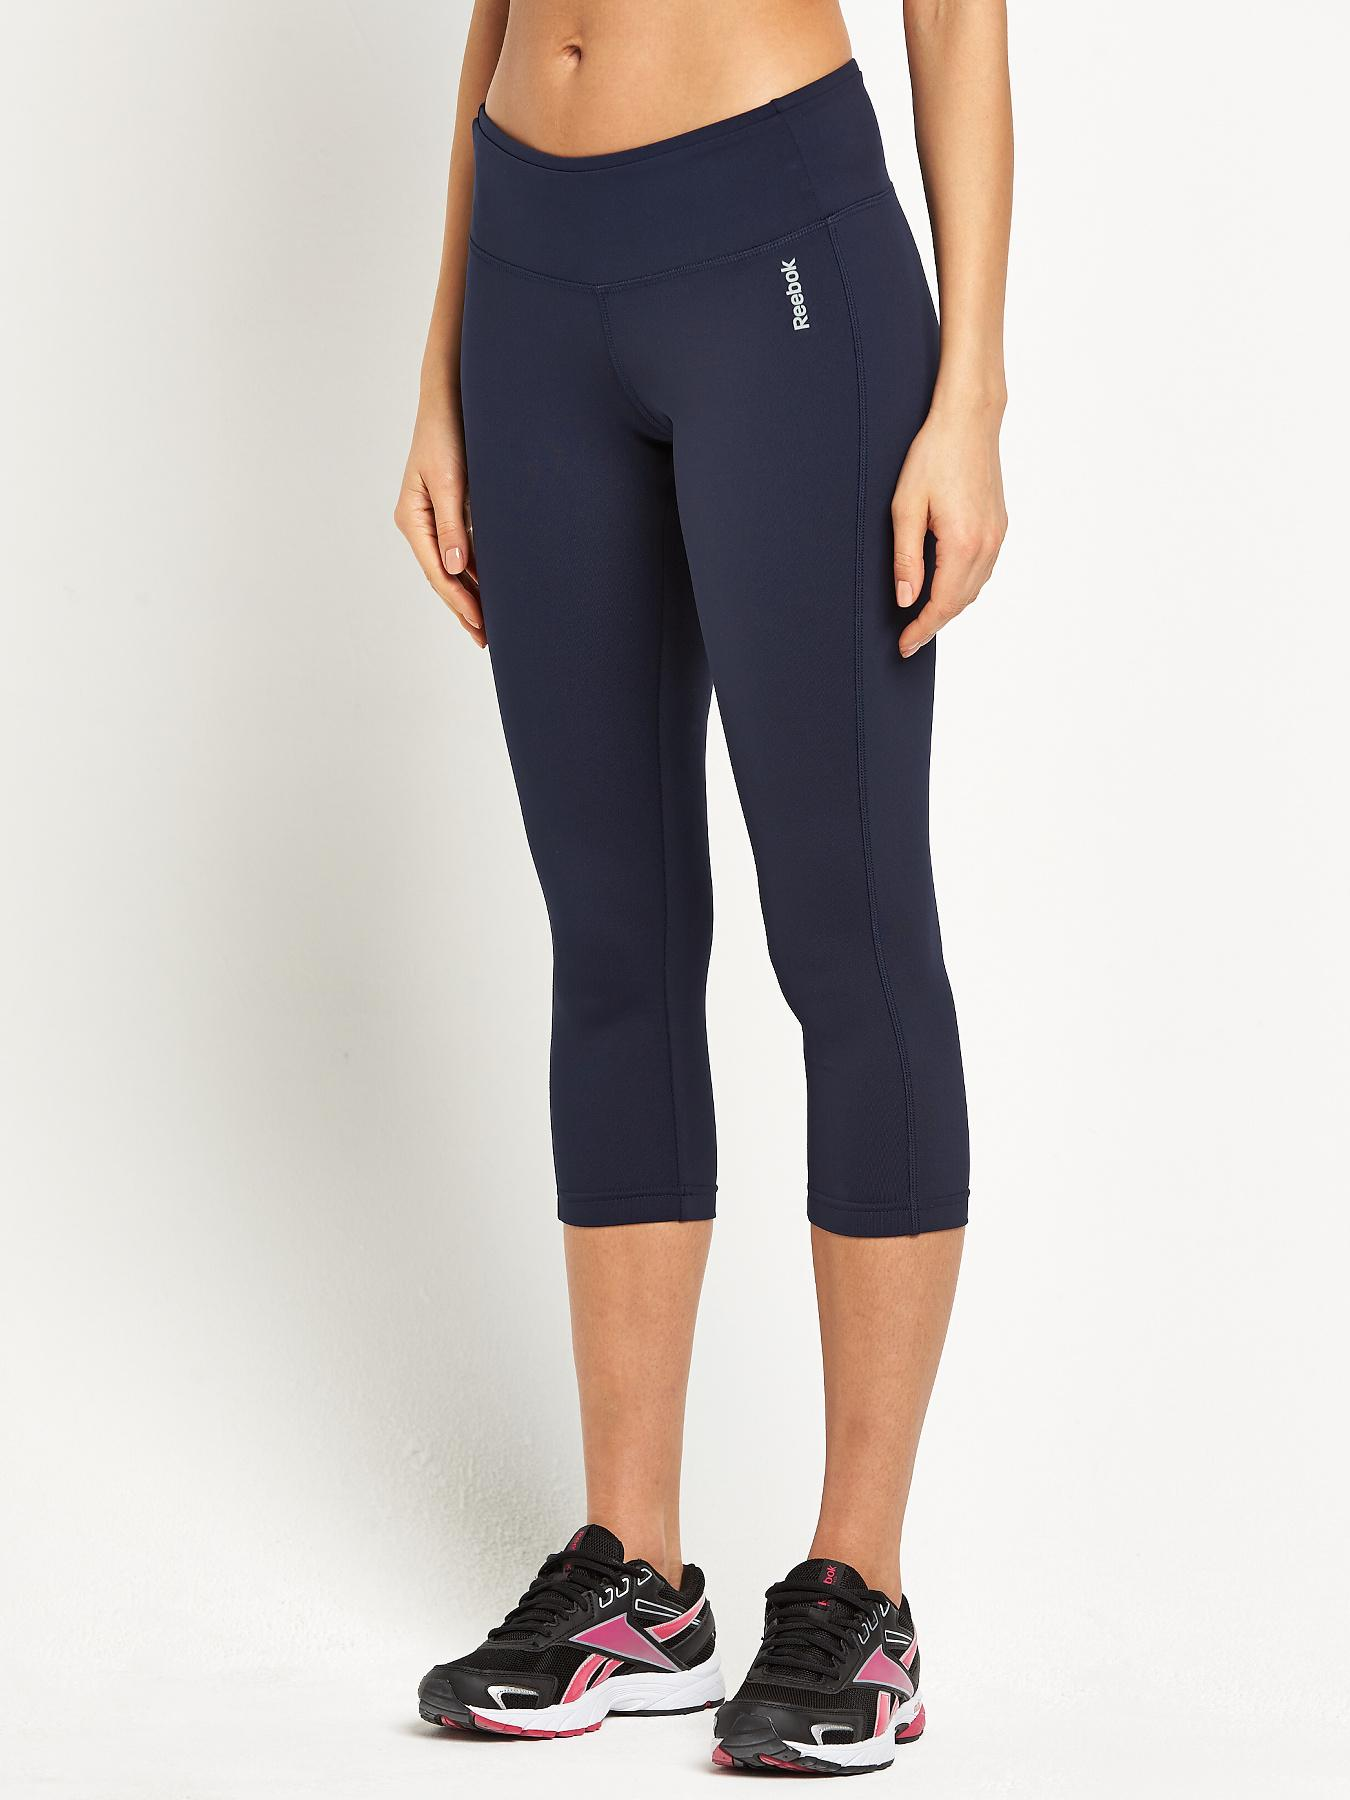 Reebok Essentials Three-Quarter Capris - Navy, Navy